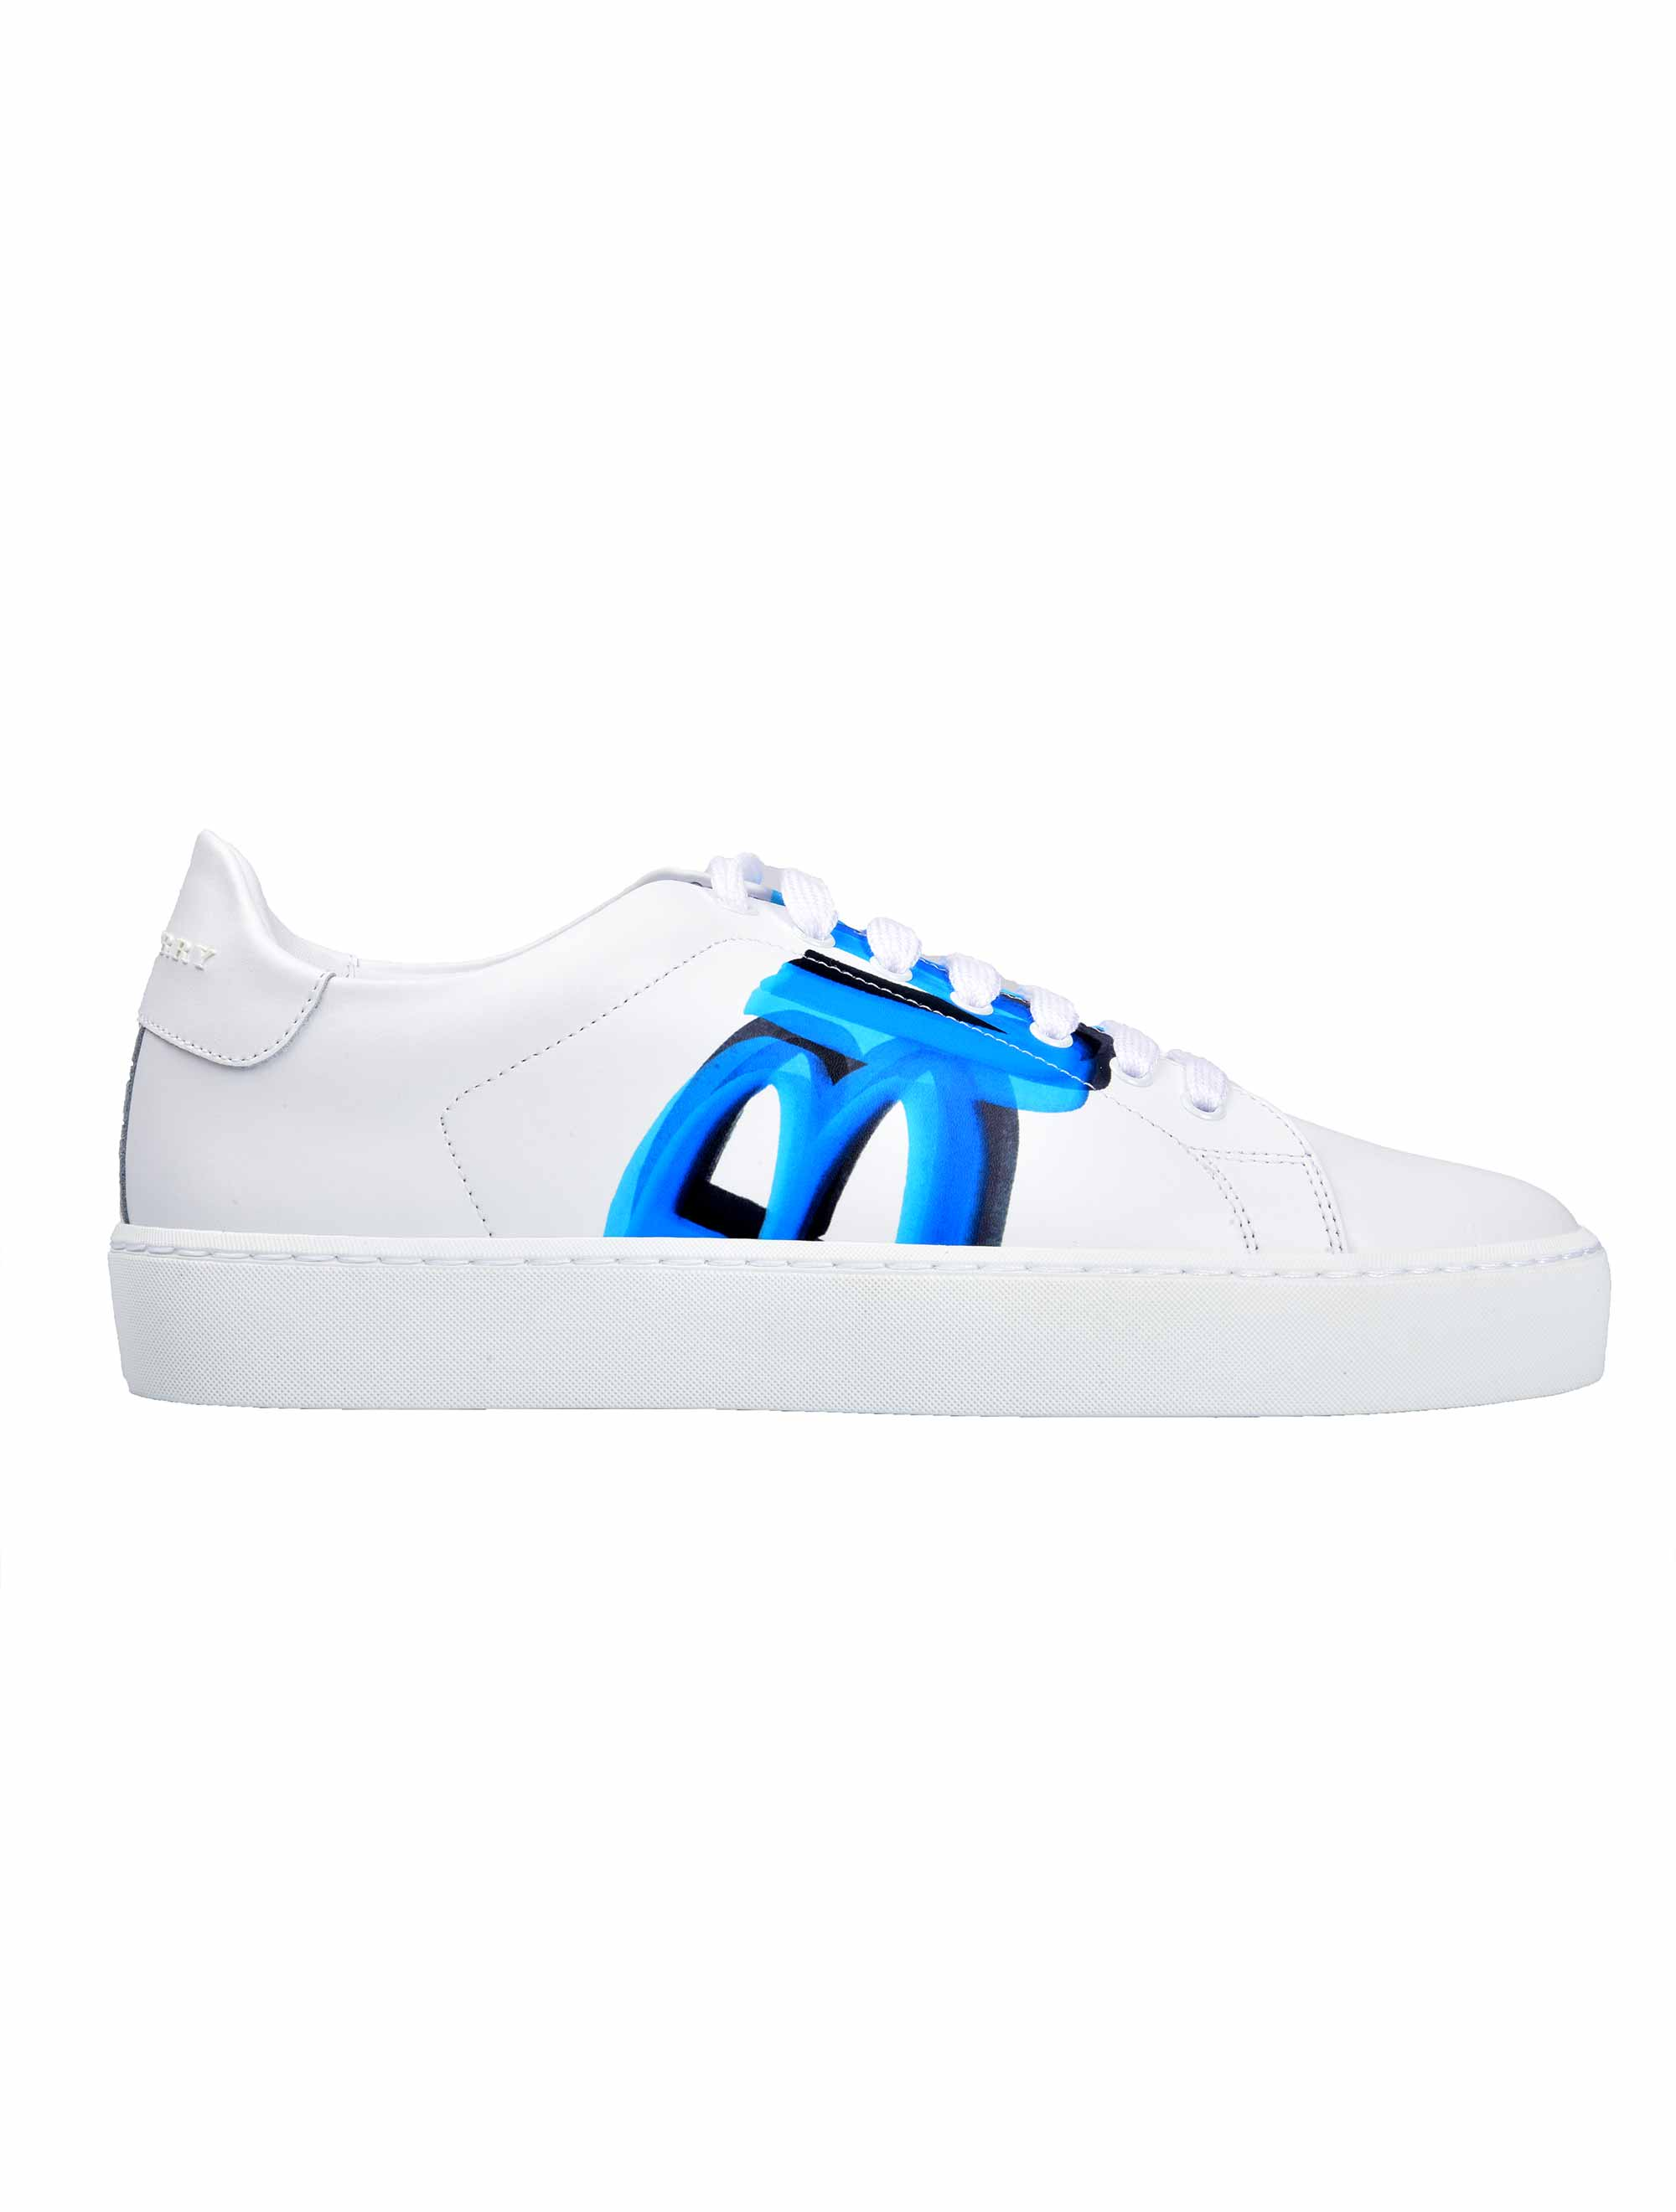 Picture of Burberry | Graffiti Print Leather Sneakers